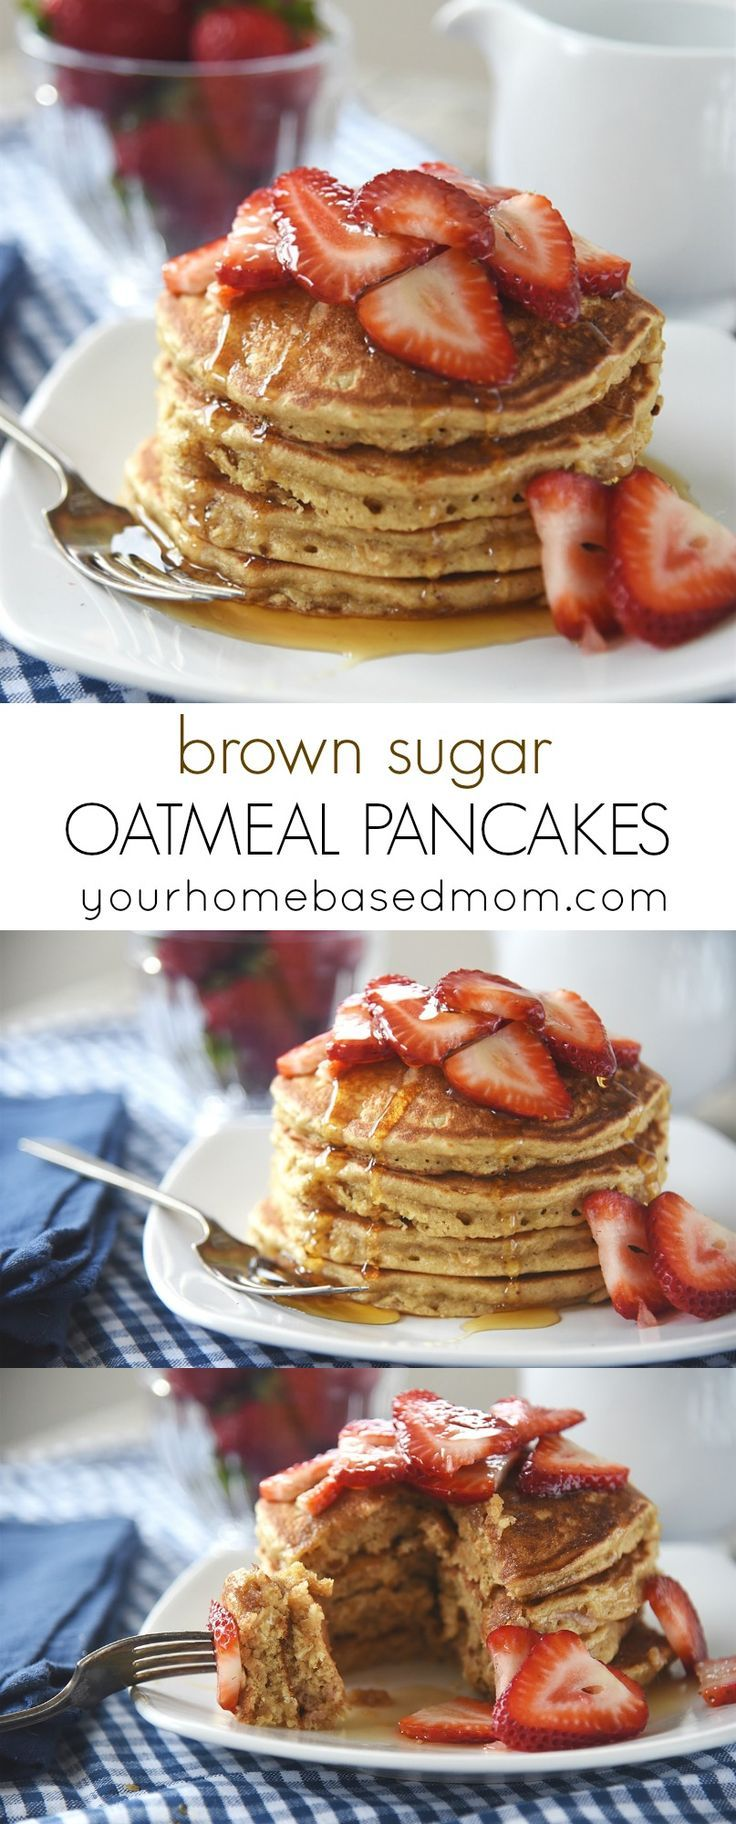 Brown Sugar Oatmeal Pancakes Recipe - these are fantastic for breakfast or dinner!